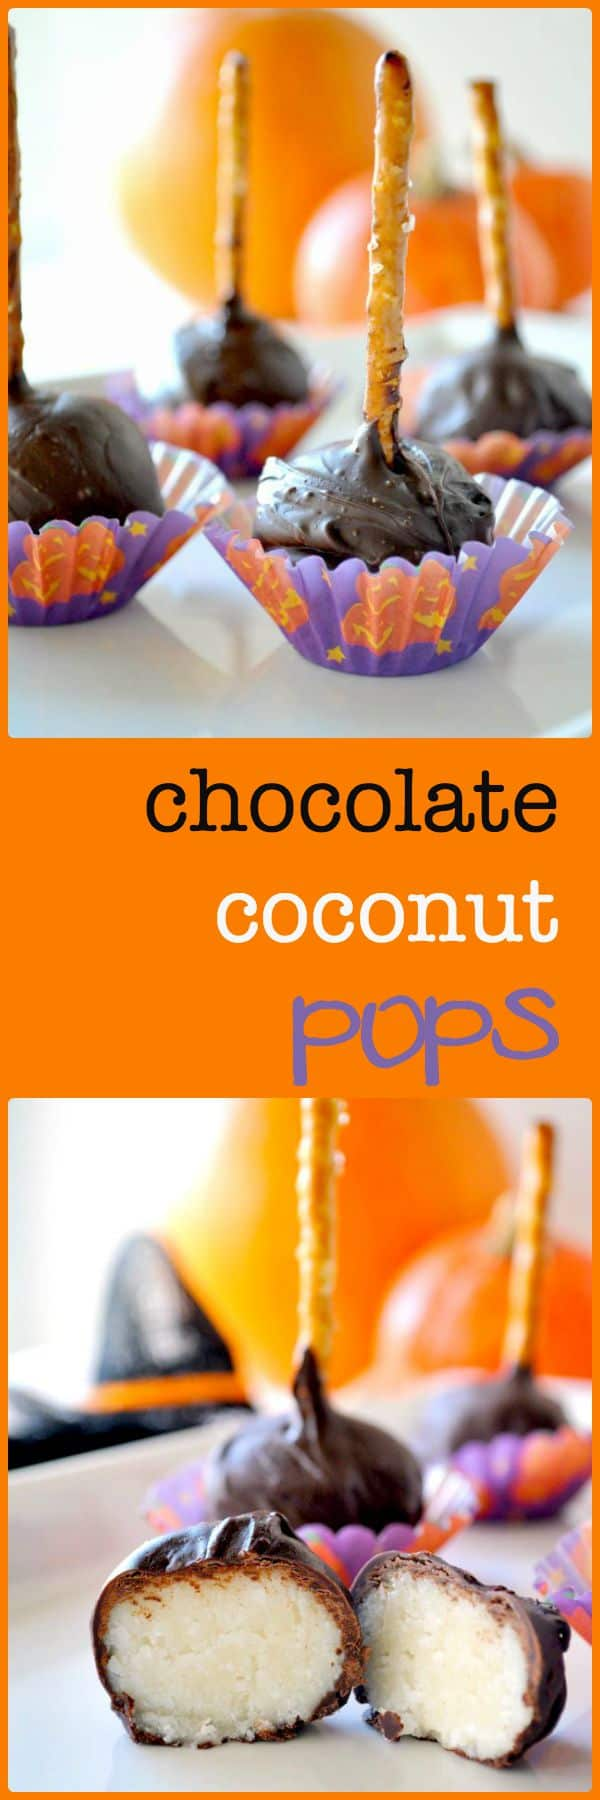 Chocolate Coconut Pops pin width=